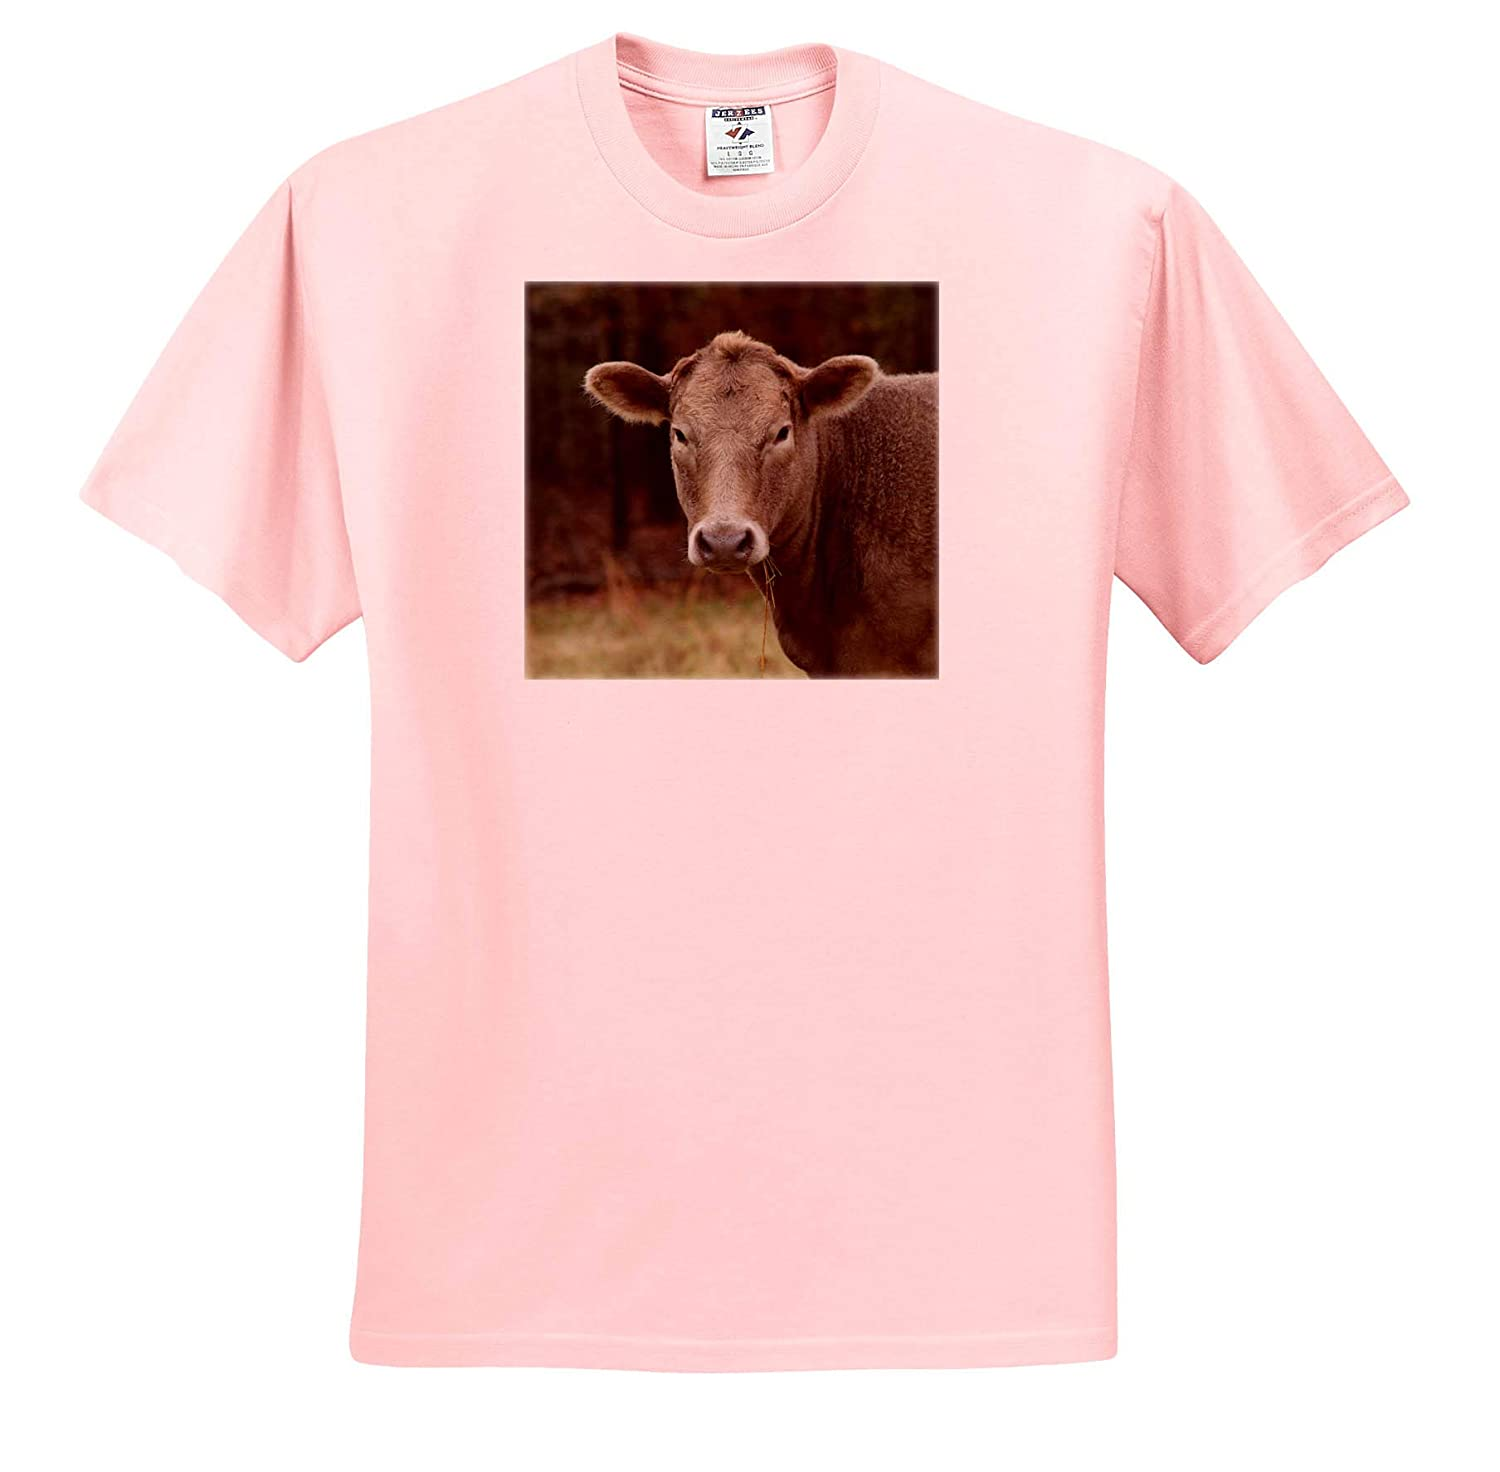 - T-Shirts Animals 3dRose Stamp City Photograph of a Cow on a Local Farm Munching on Some Grass in a Field